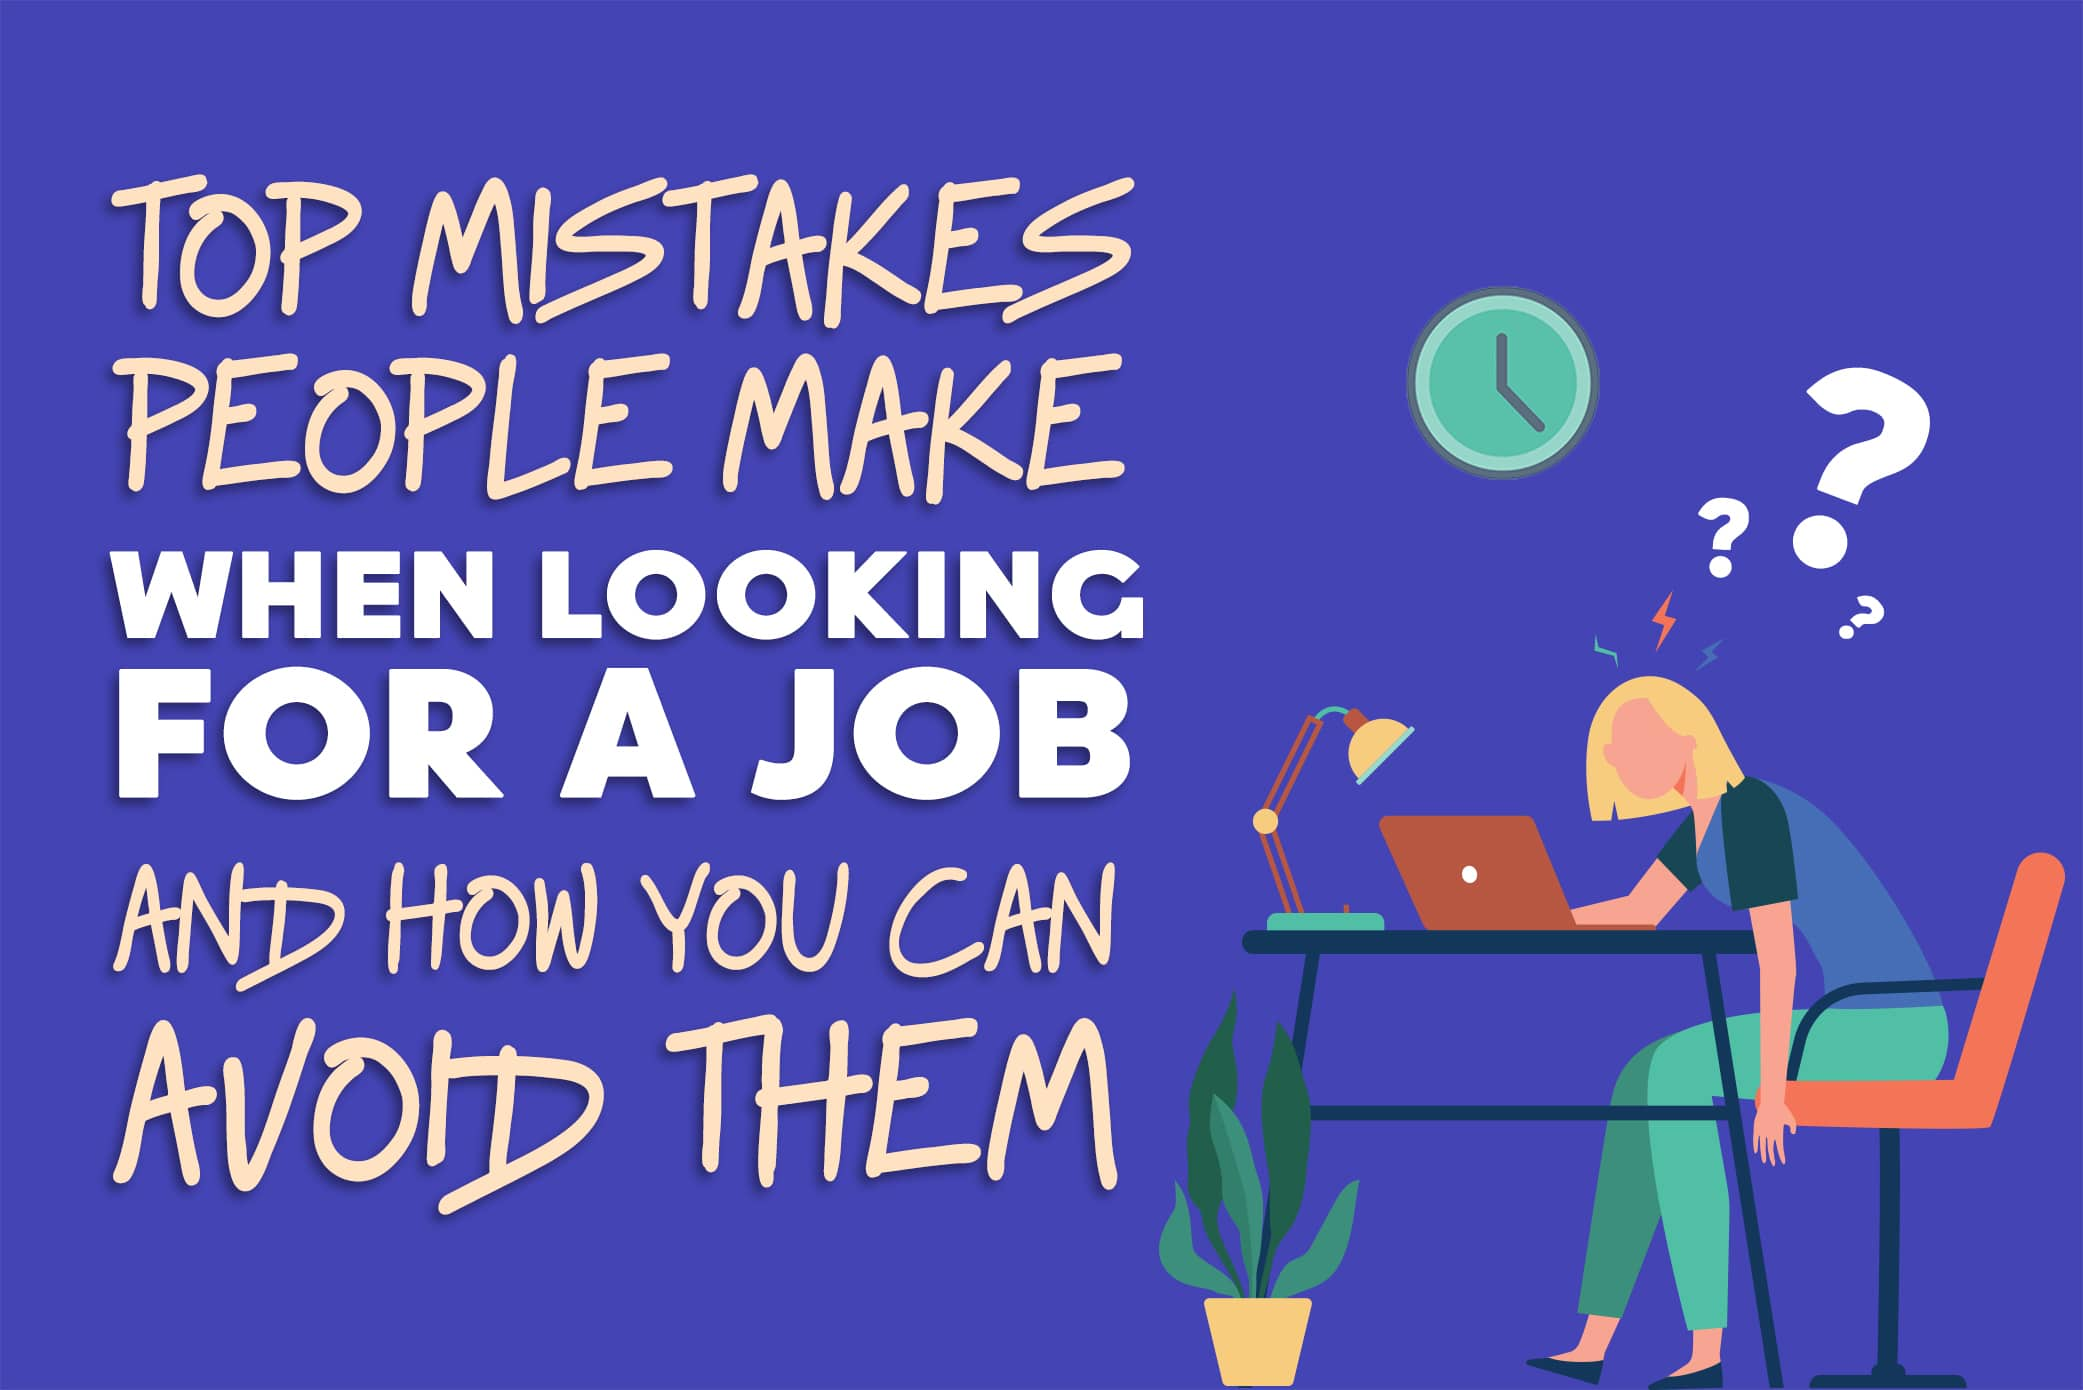 Top Mistakes People Make When Looking for a Job and How You Can Avoid Them